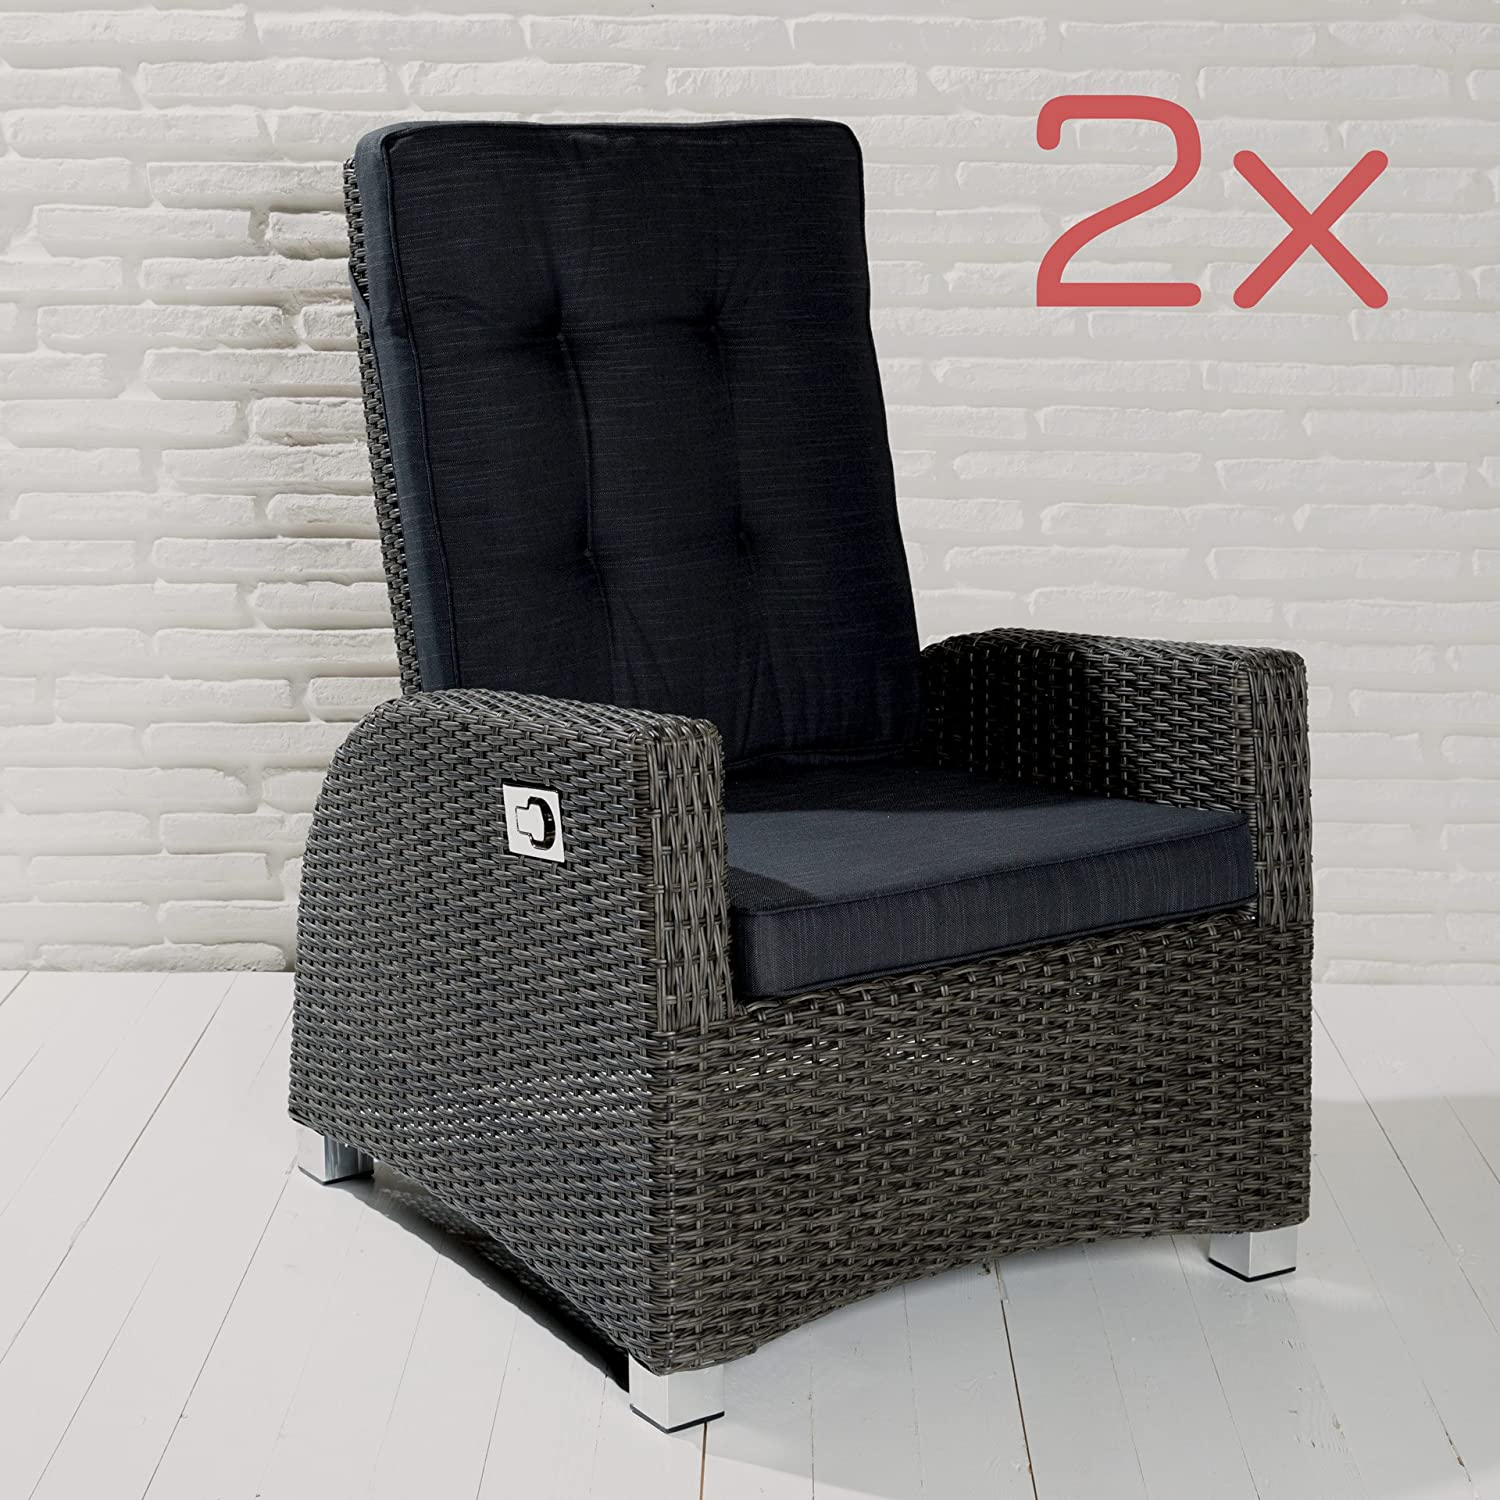 2er set barcelona living gartensessel xl sessel f r den garten oder terrasse gartenm bel. Black Bedroom Furniture Sets. Home Design Ideas